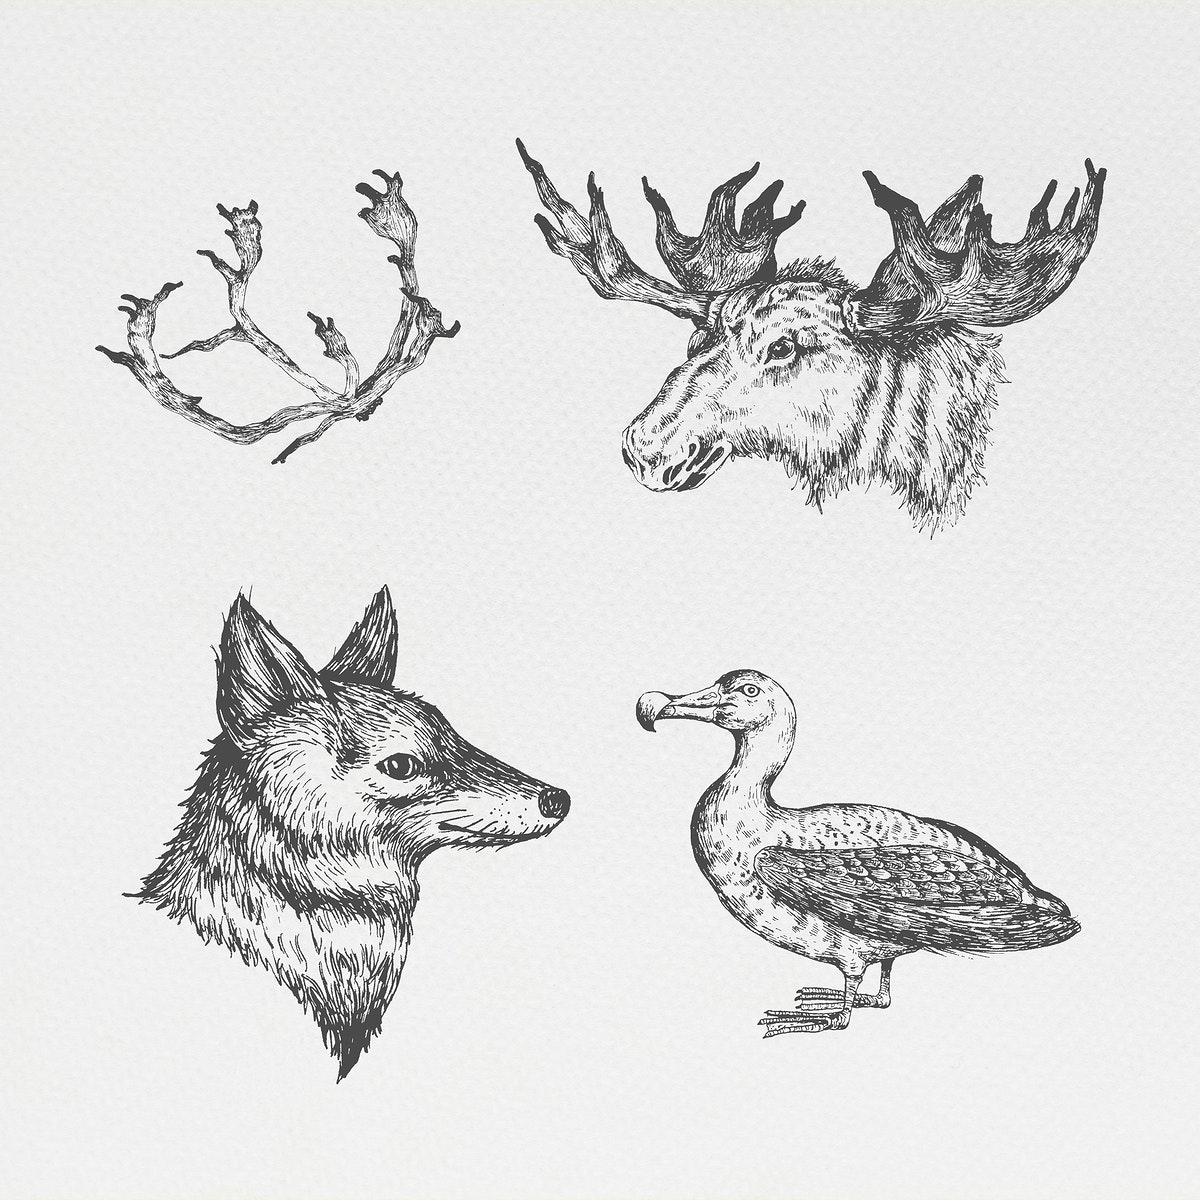 Animal drawing social ads template collection illustration